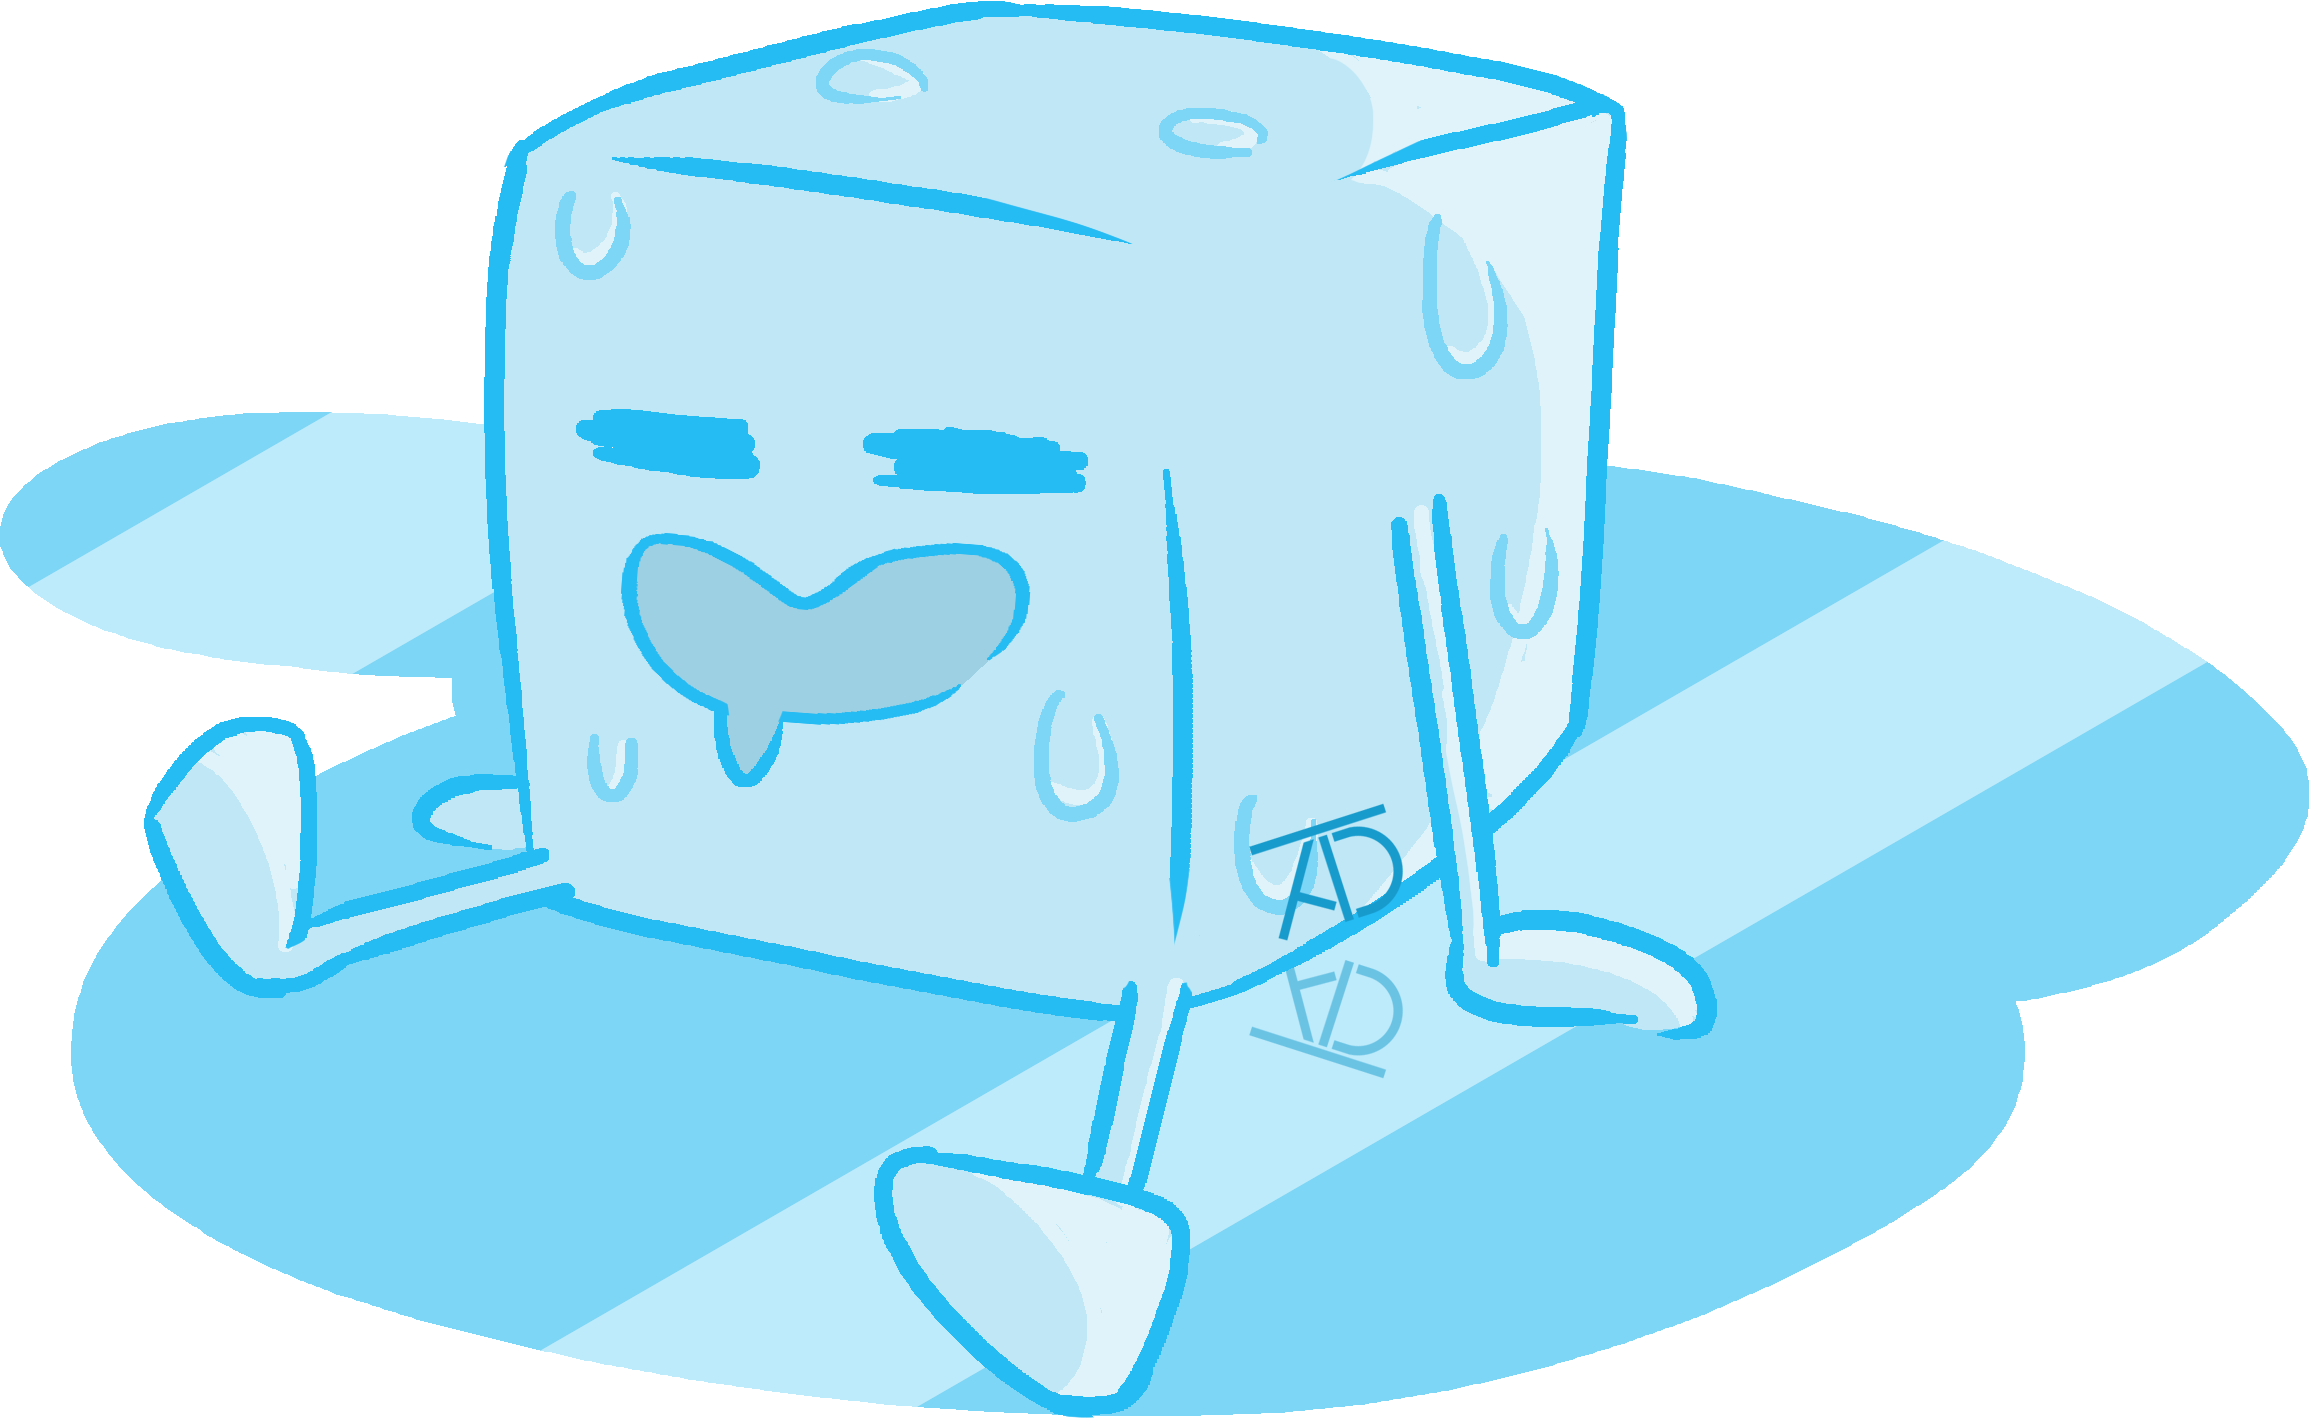 Clipart cube ice melting in the sun clip art freeuse stock Ice Cube Drawing at GetDrawings.com | Free for personal use Ice Cube ... clip art freeuse stock